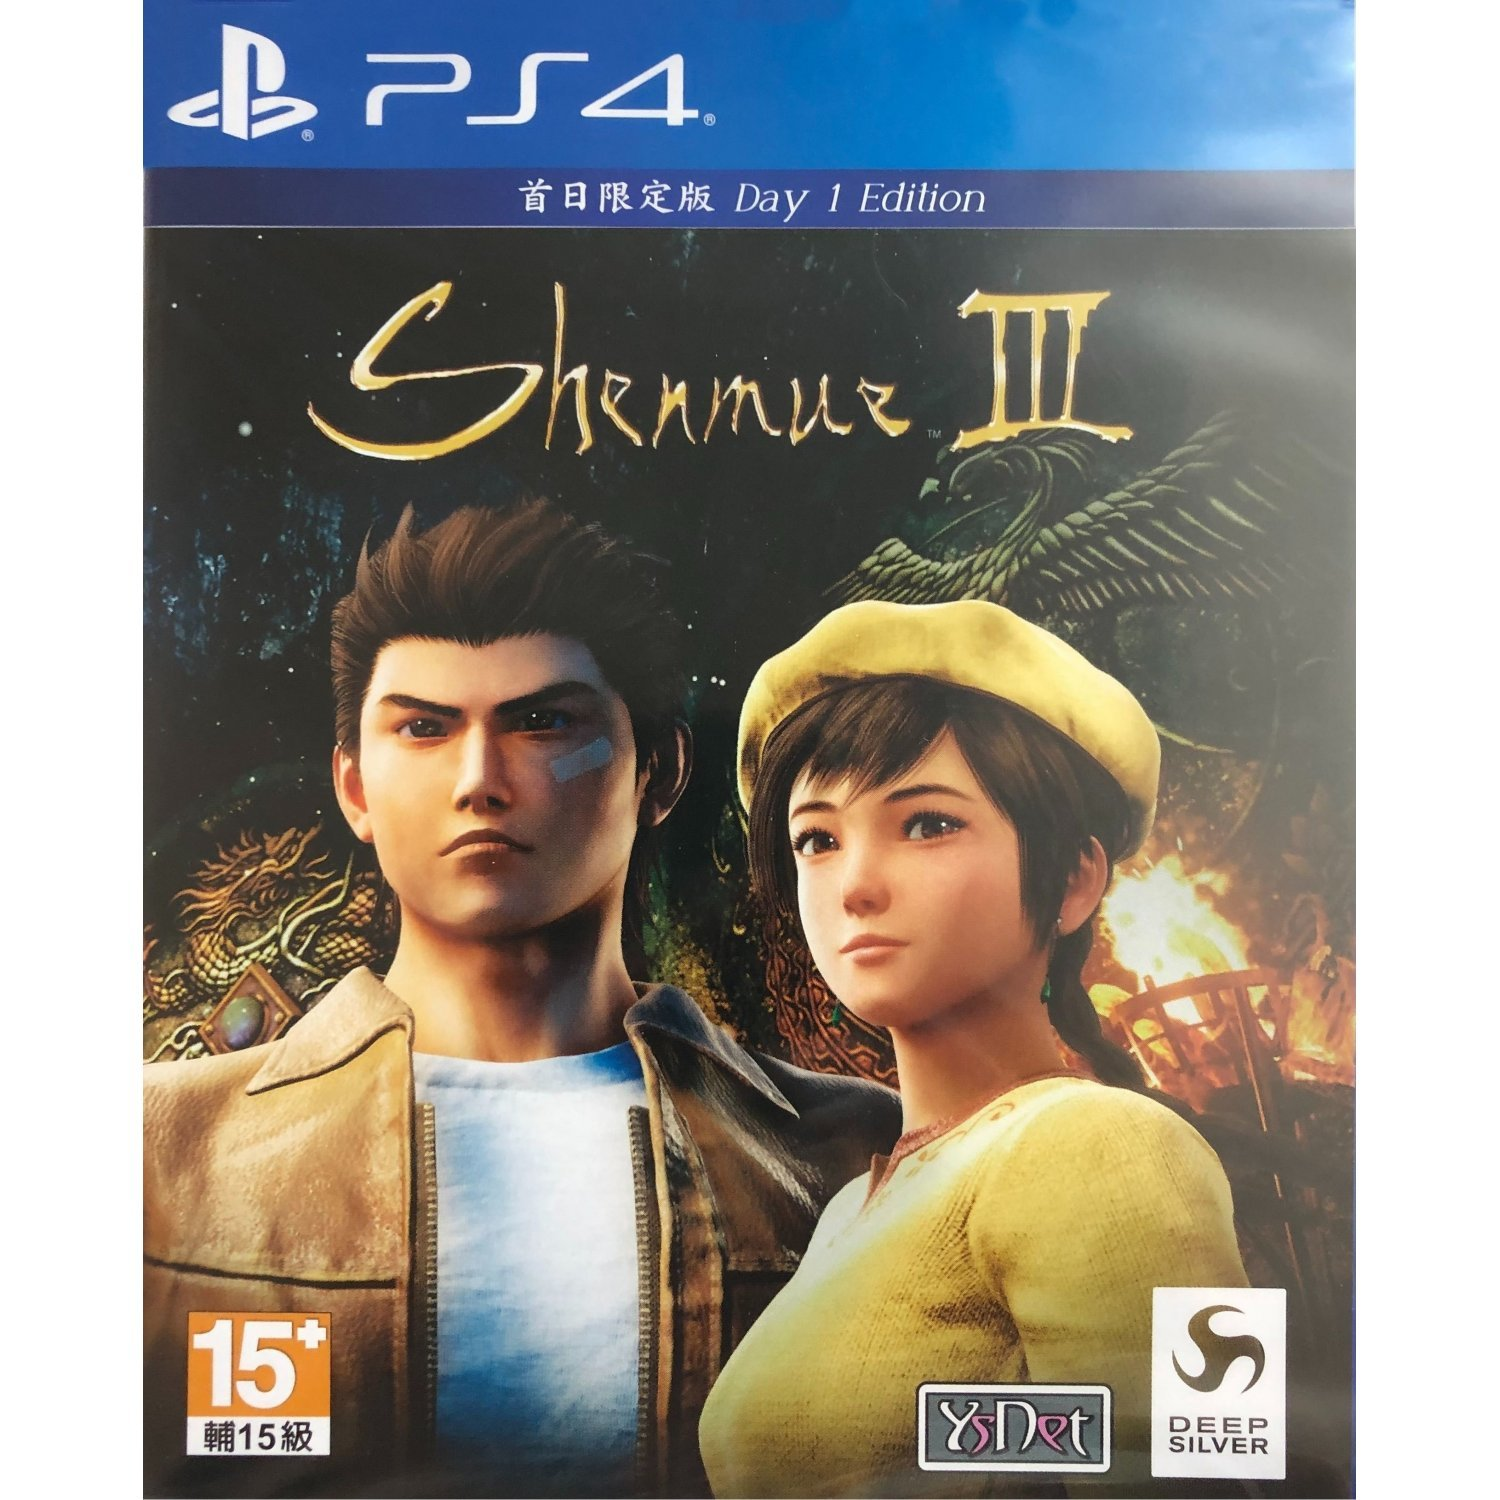 shenmue-iii-multilanguage-571323.9.jpg